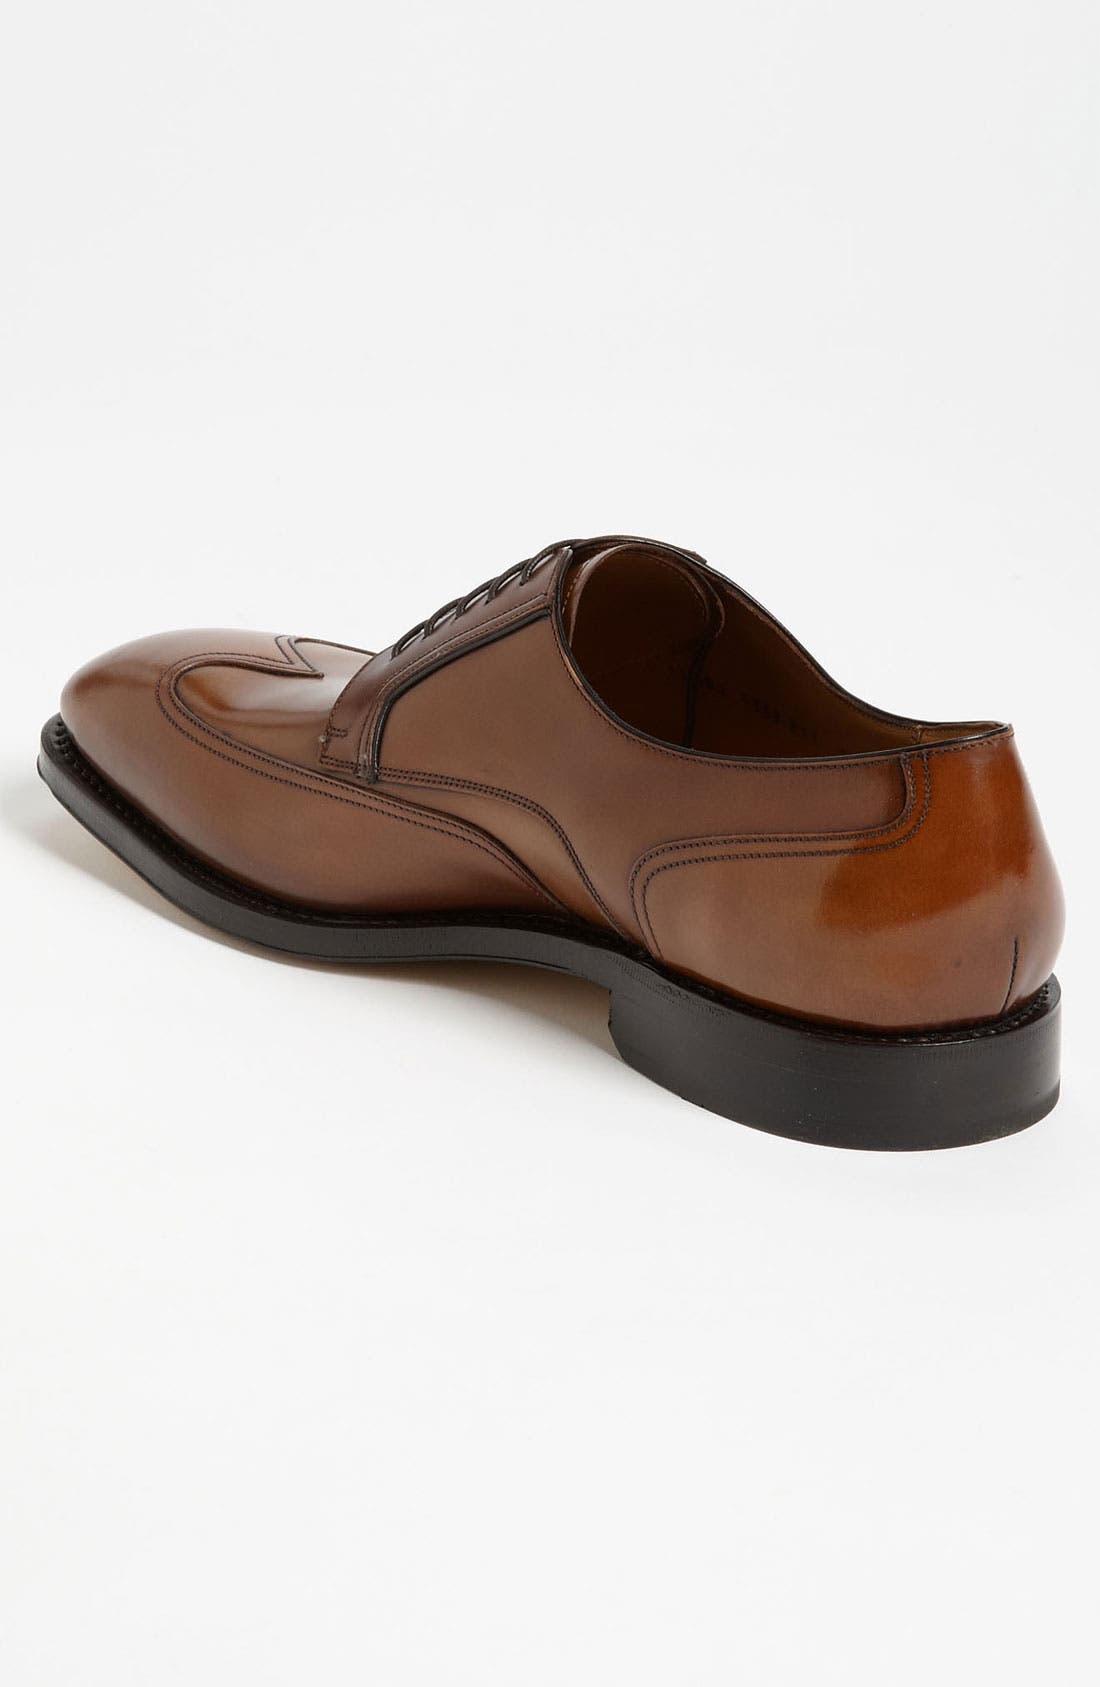 Alternate Image 2  - Salvatore Ferragamo 'Candido' Wingtip